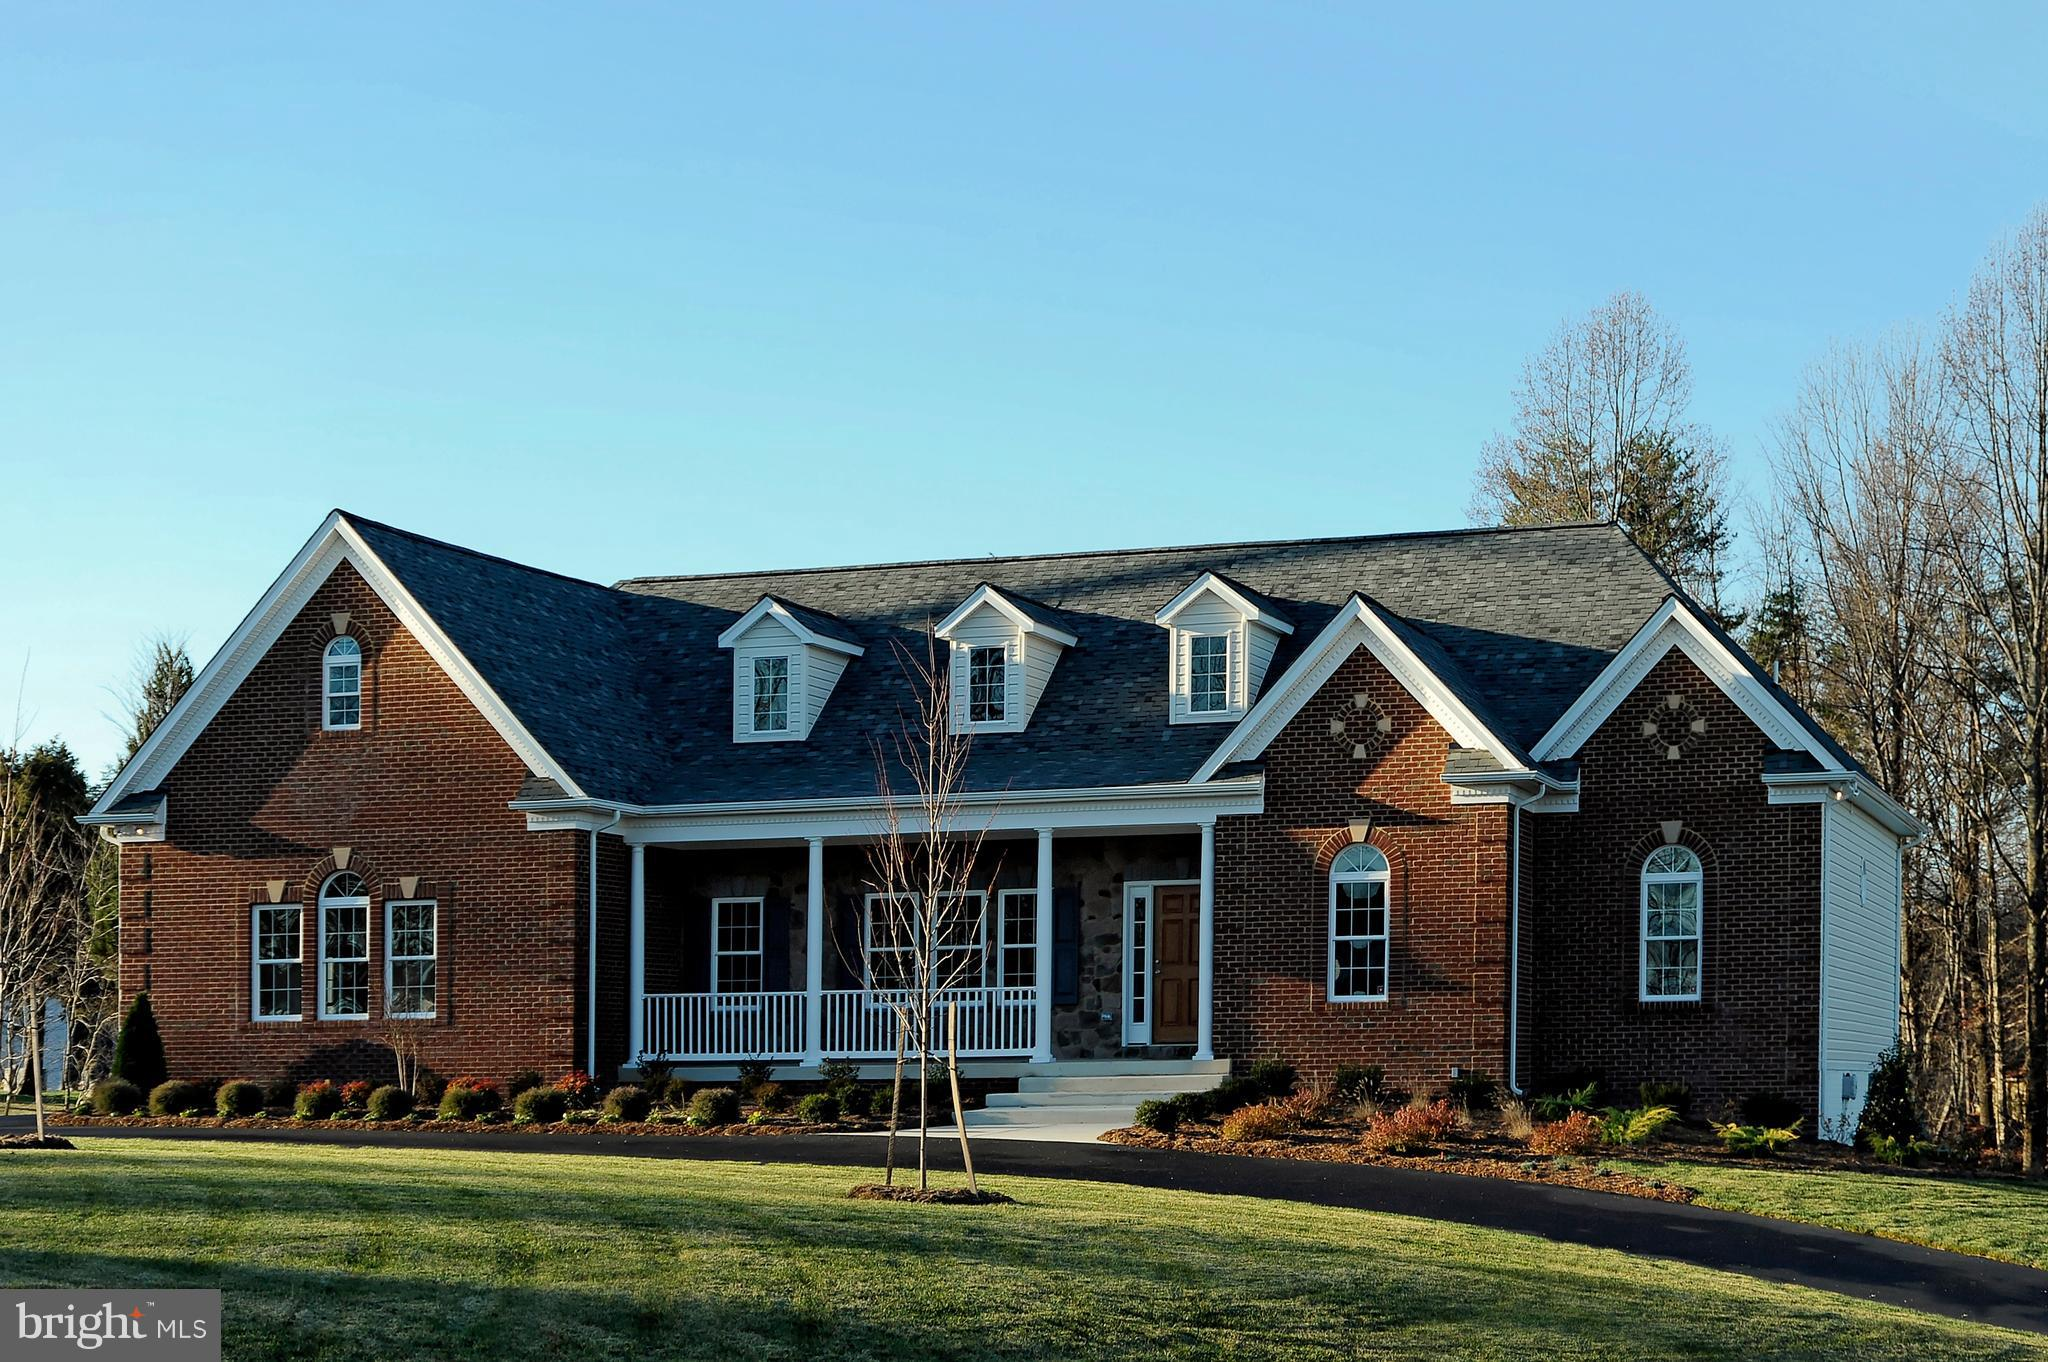 TO BE BUILT BY 3 TIME BUILDER OF THE YEAR, CLASSIC CONCEPT BUILDERS***GORGEOUS OPEN FLOOR PLANS**FAN